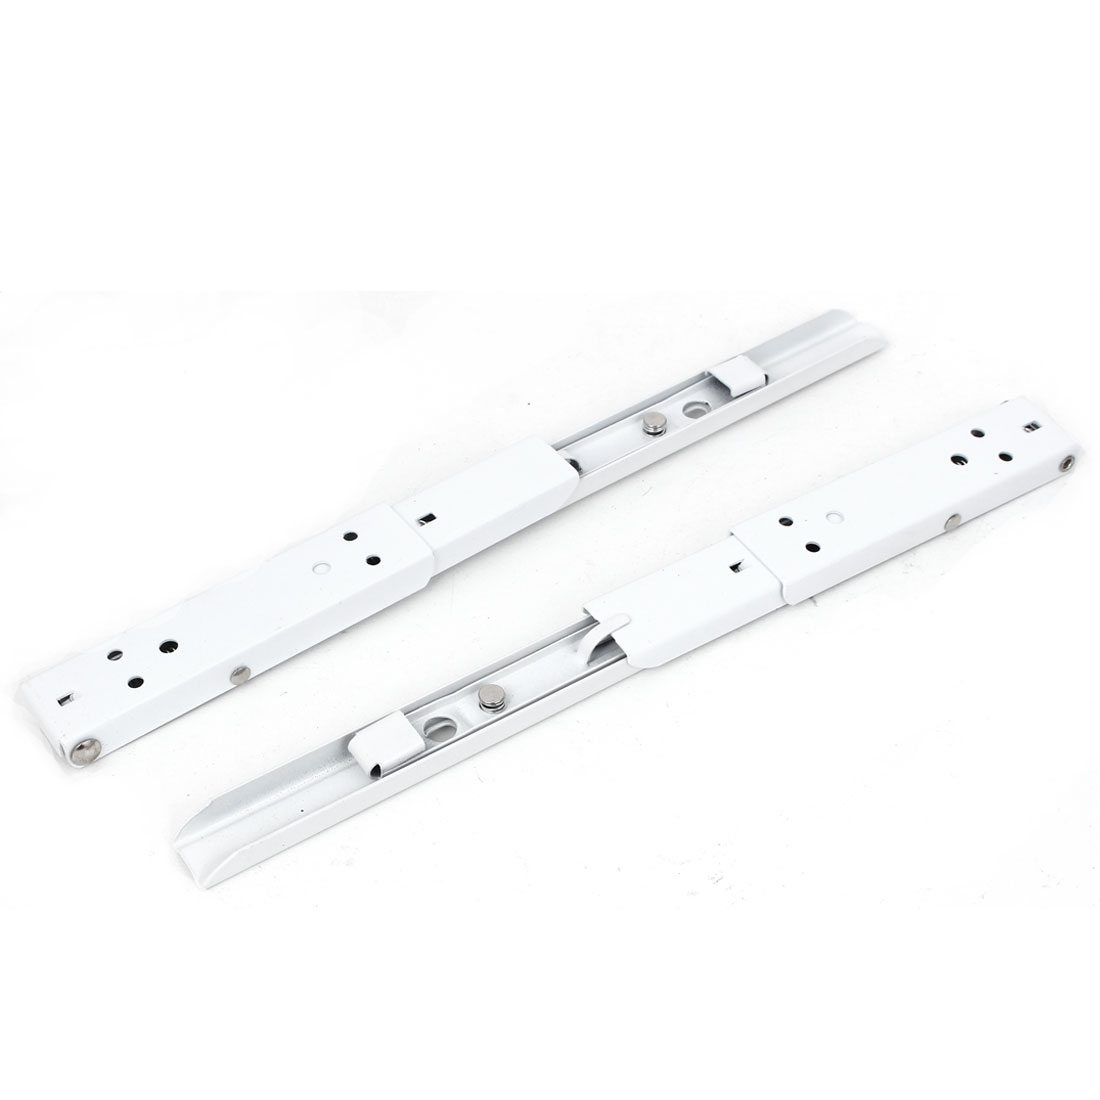 Shelf Bench Table 335mm Long Spring Loaded Metal Folding Support Bracket Brace 2pcs